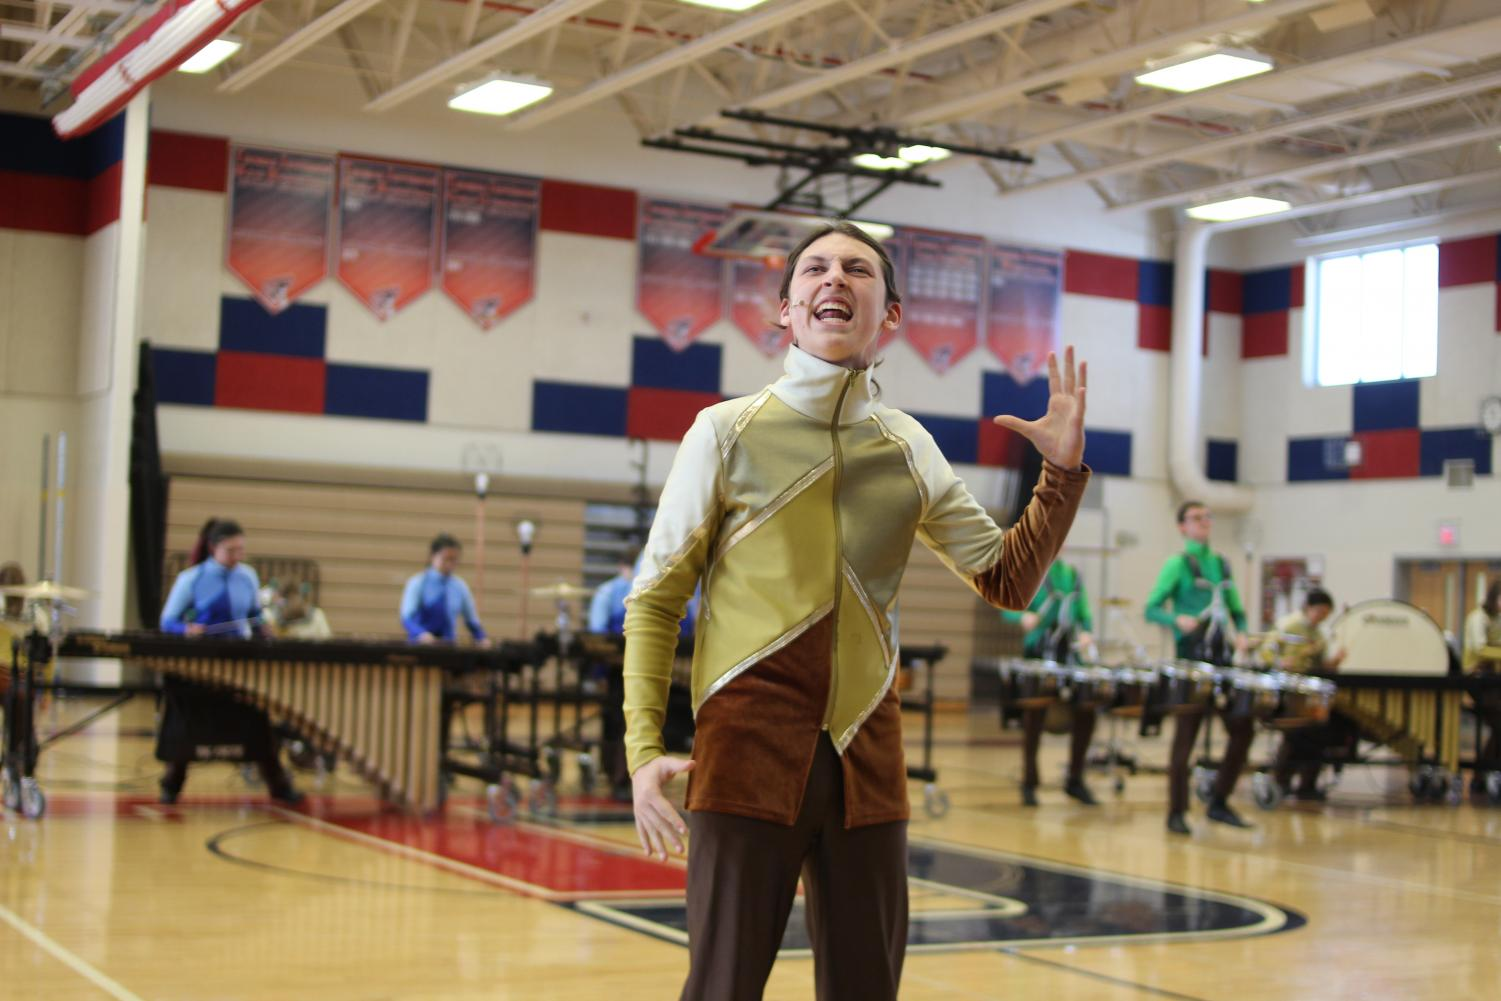 Using+hand+gestures+to+emphasize+his+words%2C+freshman+Zander+Kuebler+provides+a+narrated+introduction+to+the+drumline+performance.+%0A